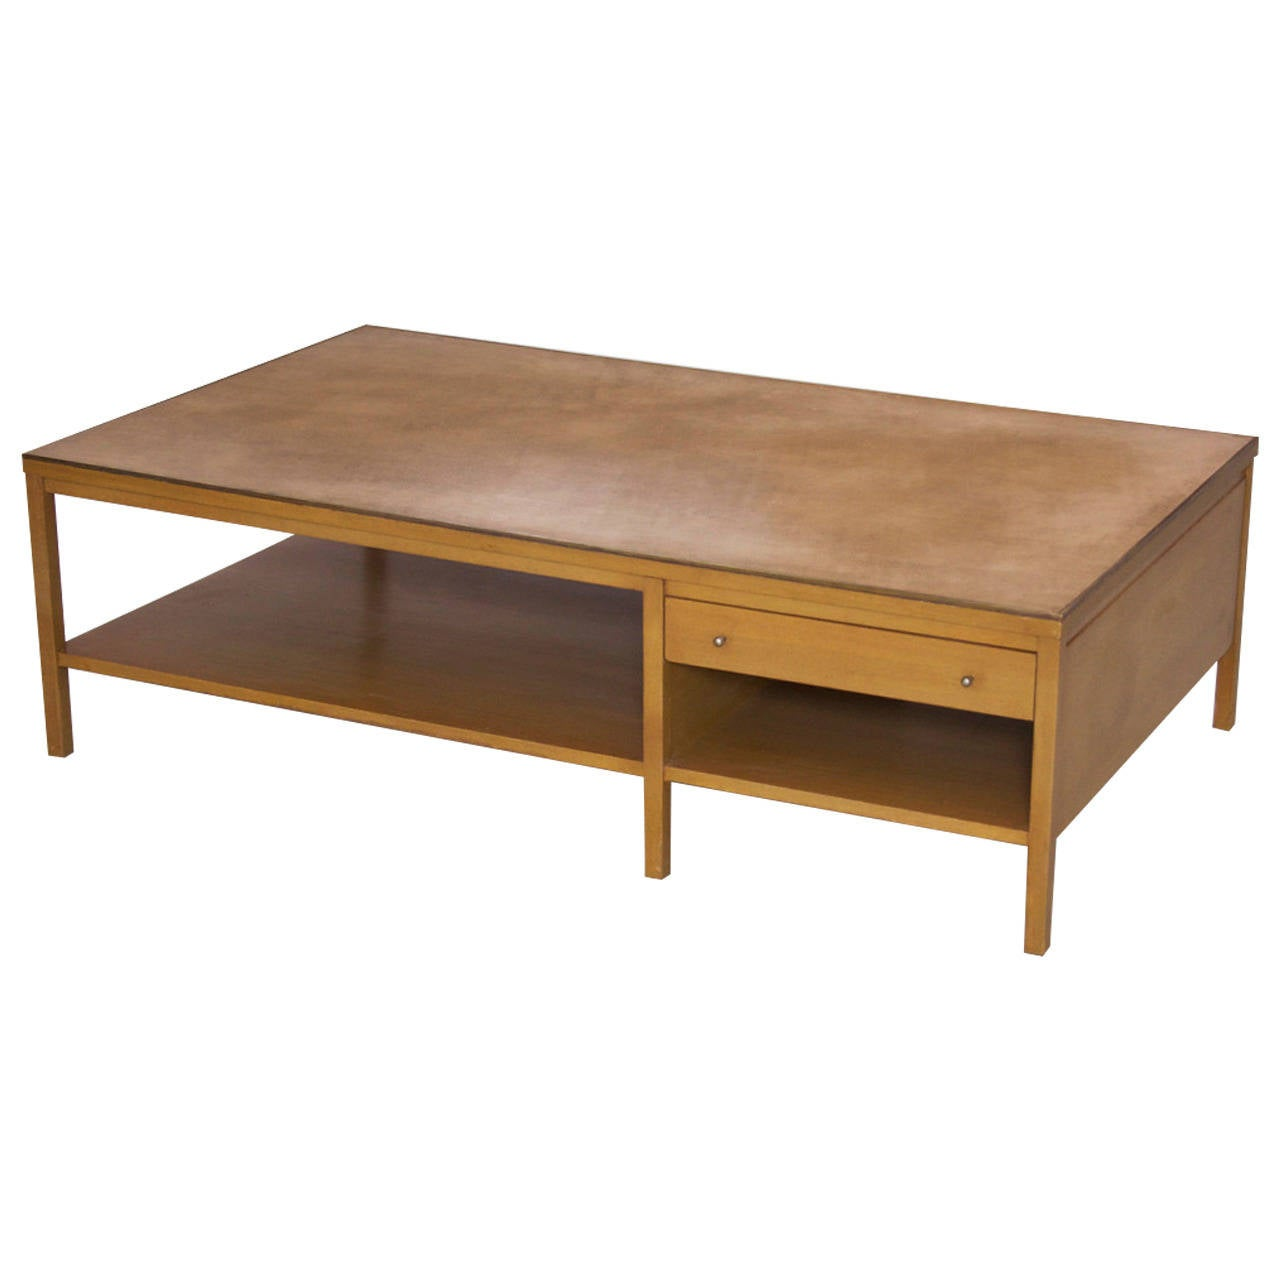 Rare Paul Mccobb Coffee Table With Leather Top For Calvin At 1stdibs